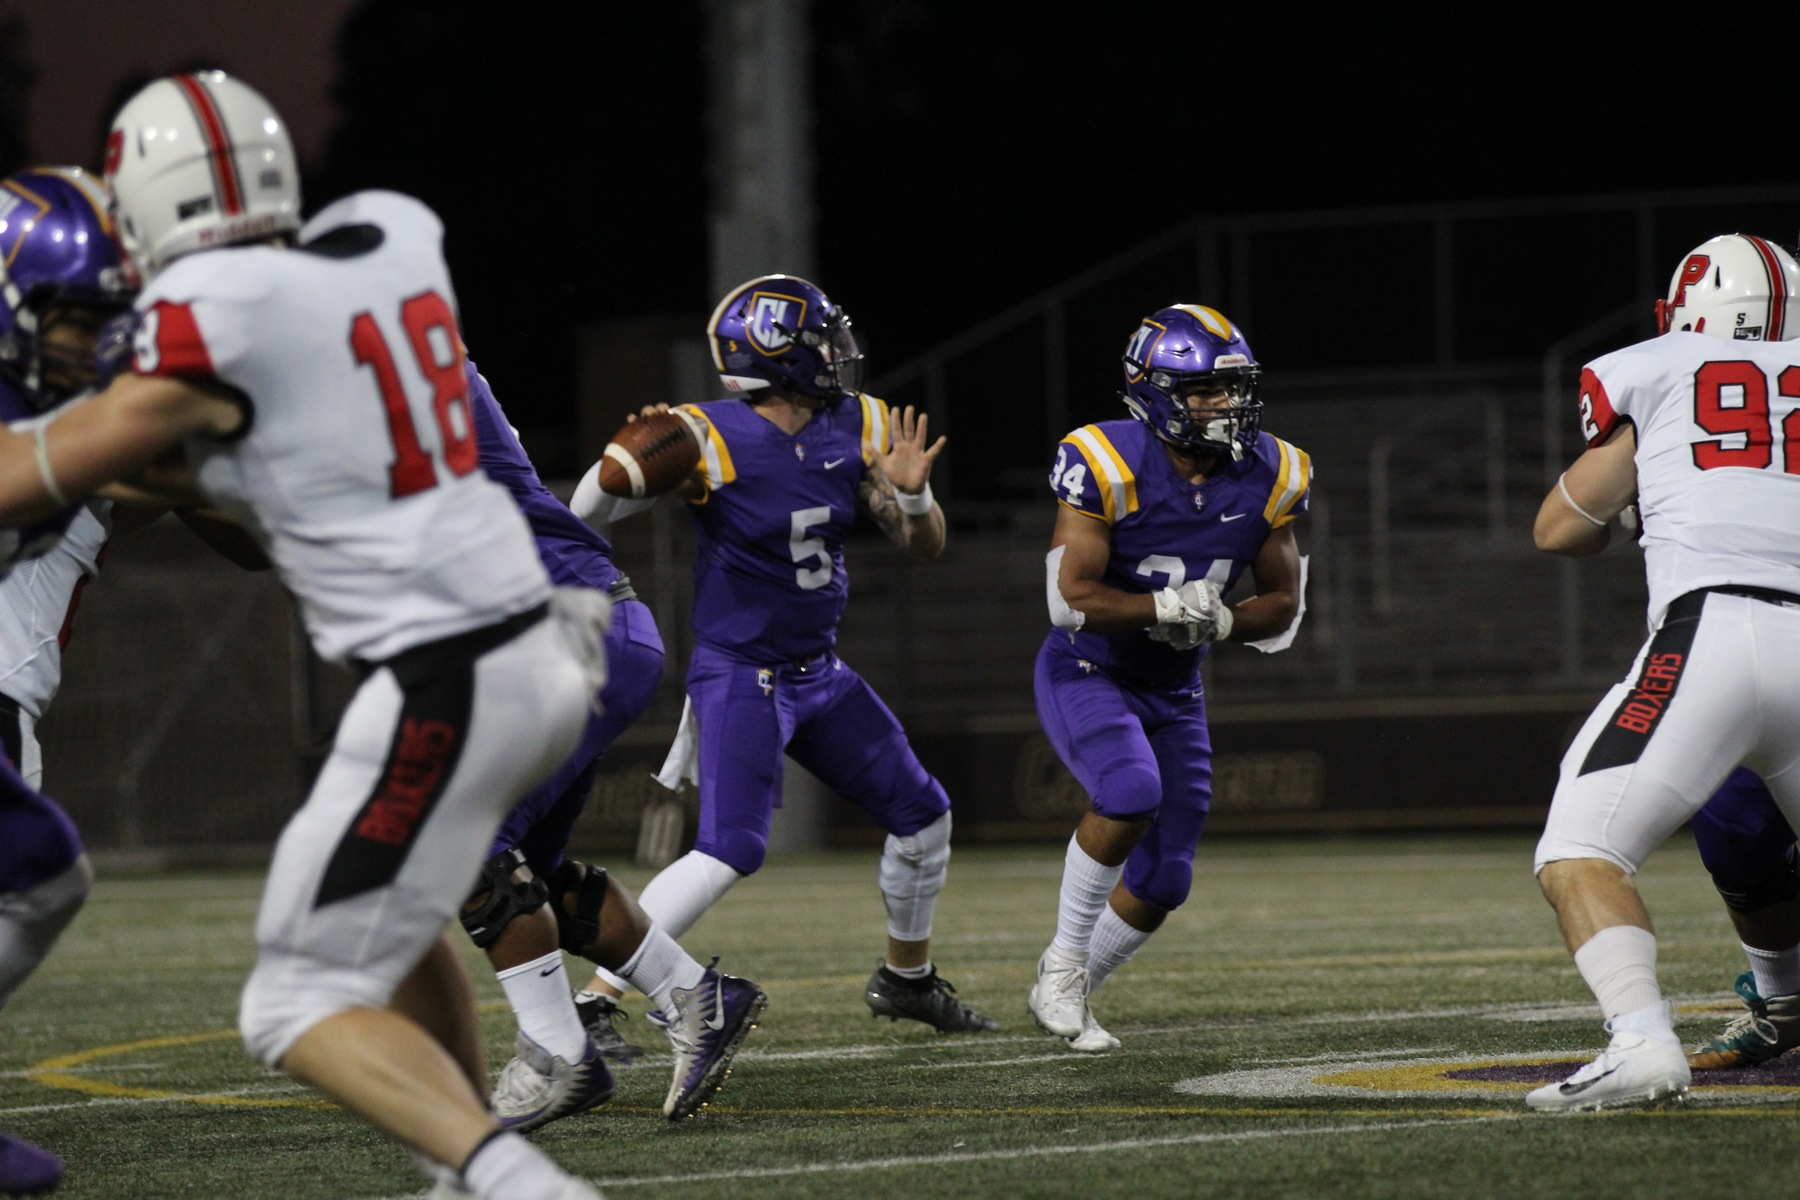 Quarterback Cesar De Leon threw six touchdowns against Pacific, tying the program's single-game mark. (Photo: Kylie McEnroe)